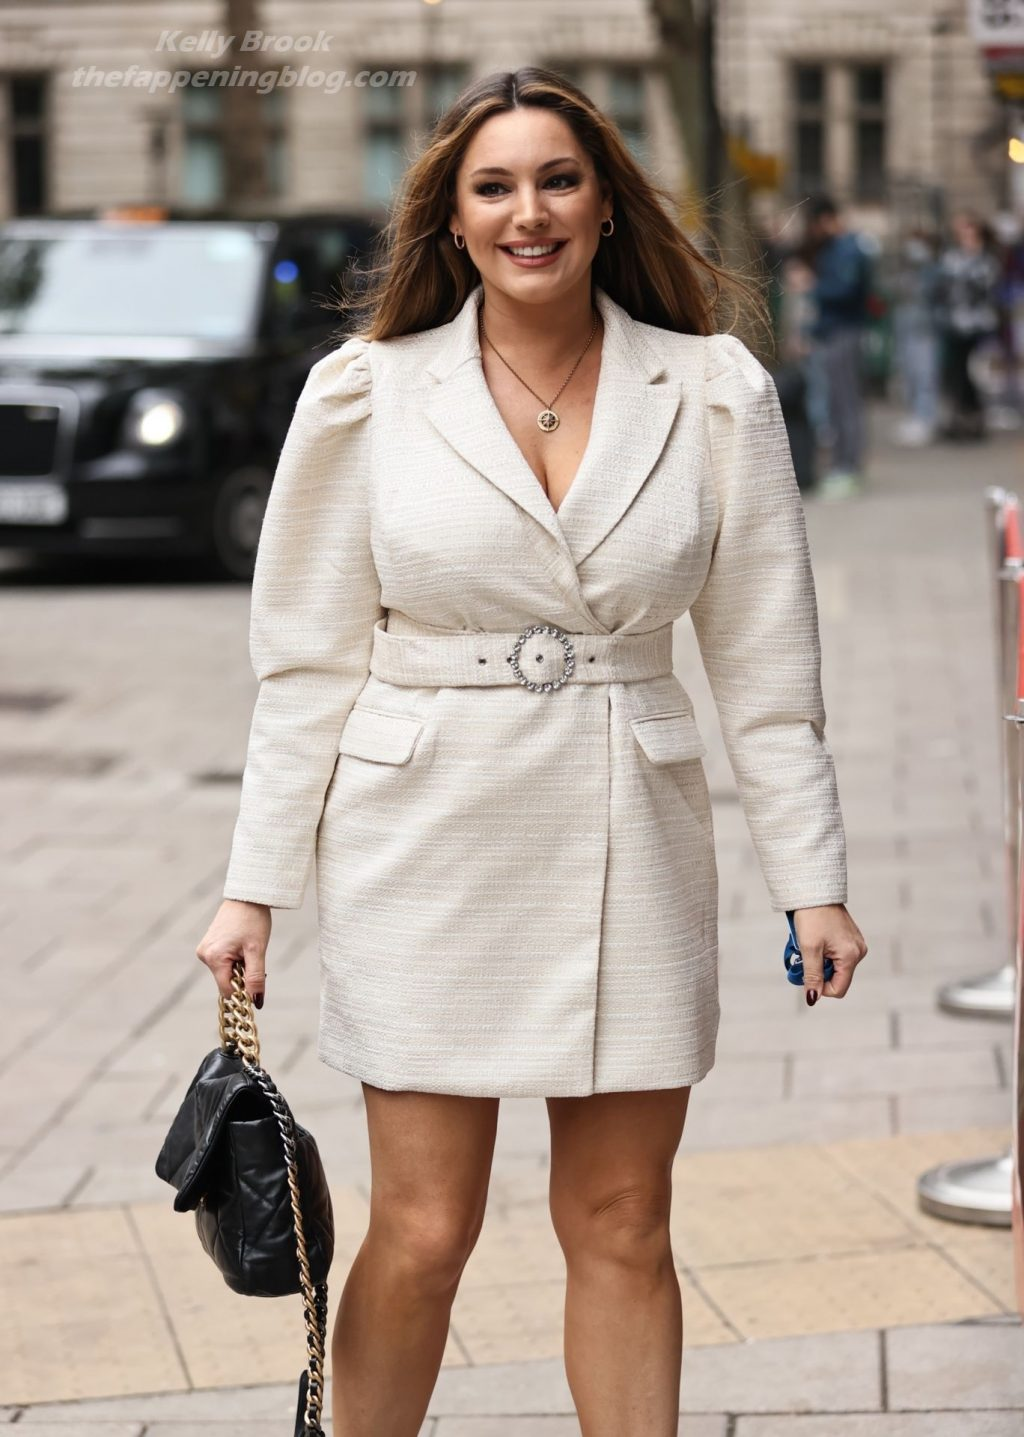 Kelly Brook Displays Her Cleavage and Sexy Legs in London (48 Photos)